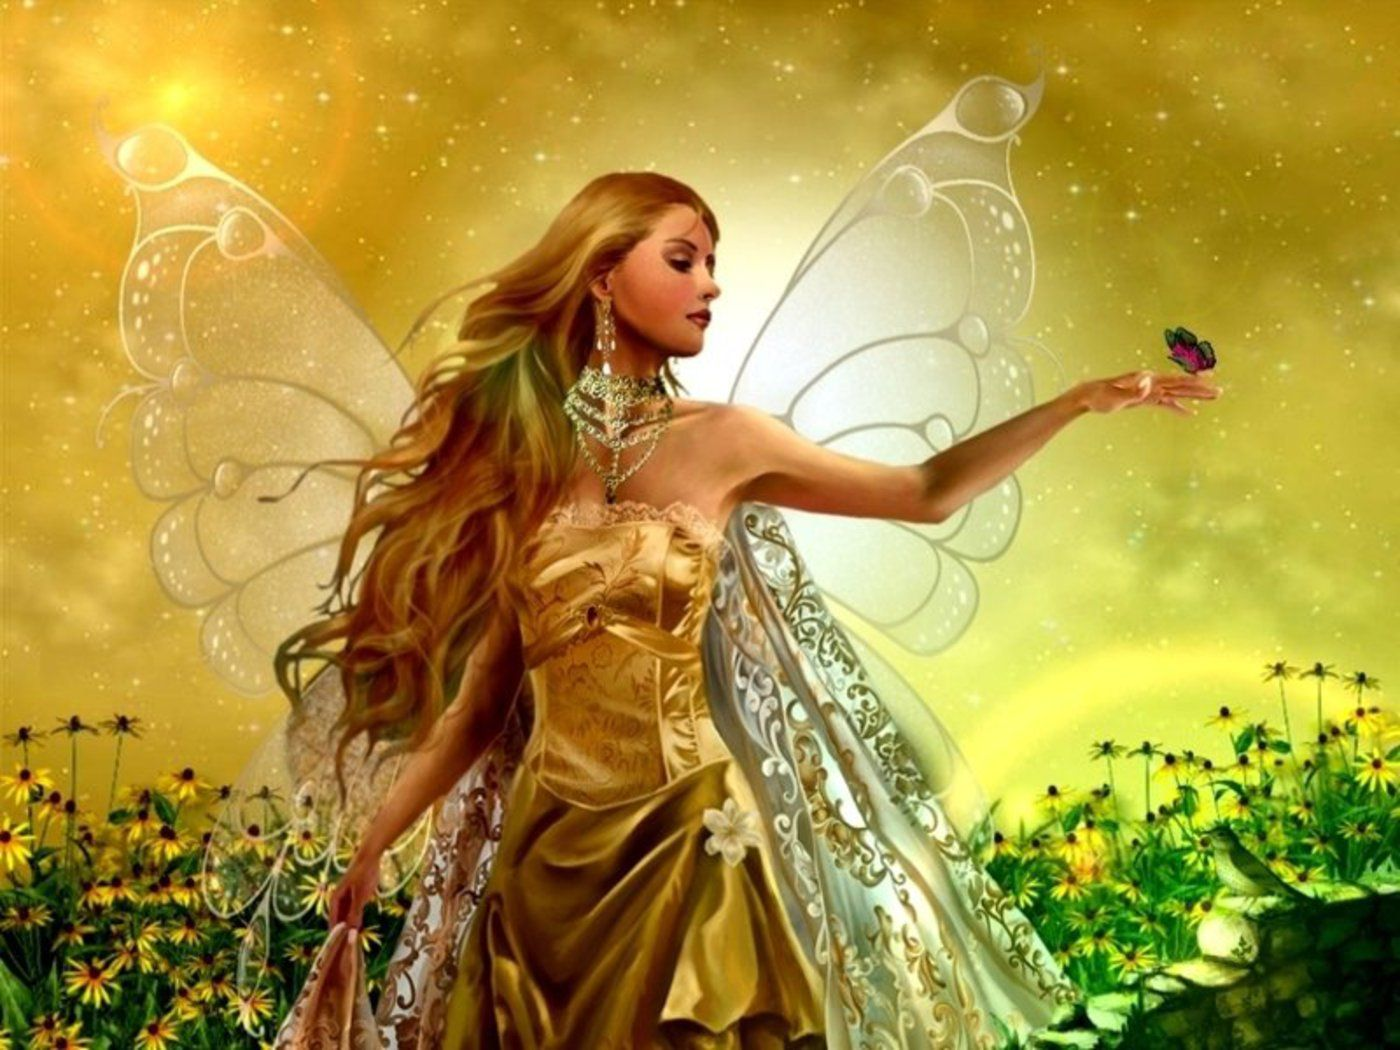 Fairy And Butterfly Angel Wallpaper 1400x1050 Full HD Wallpapers 1400x1050